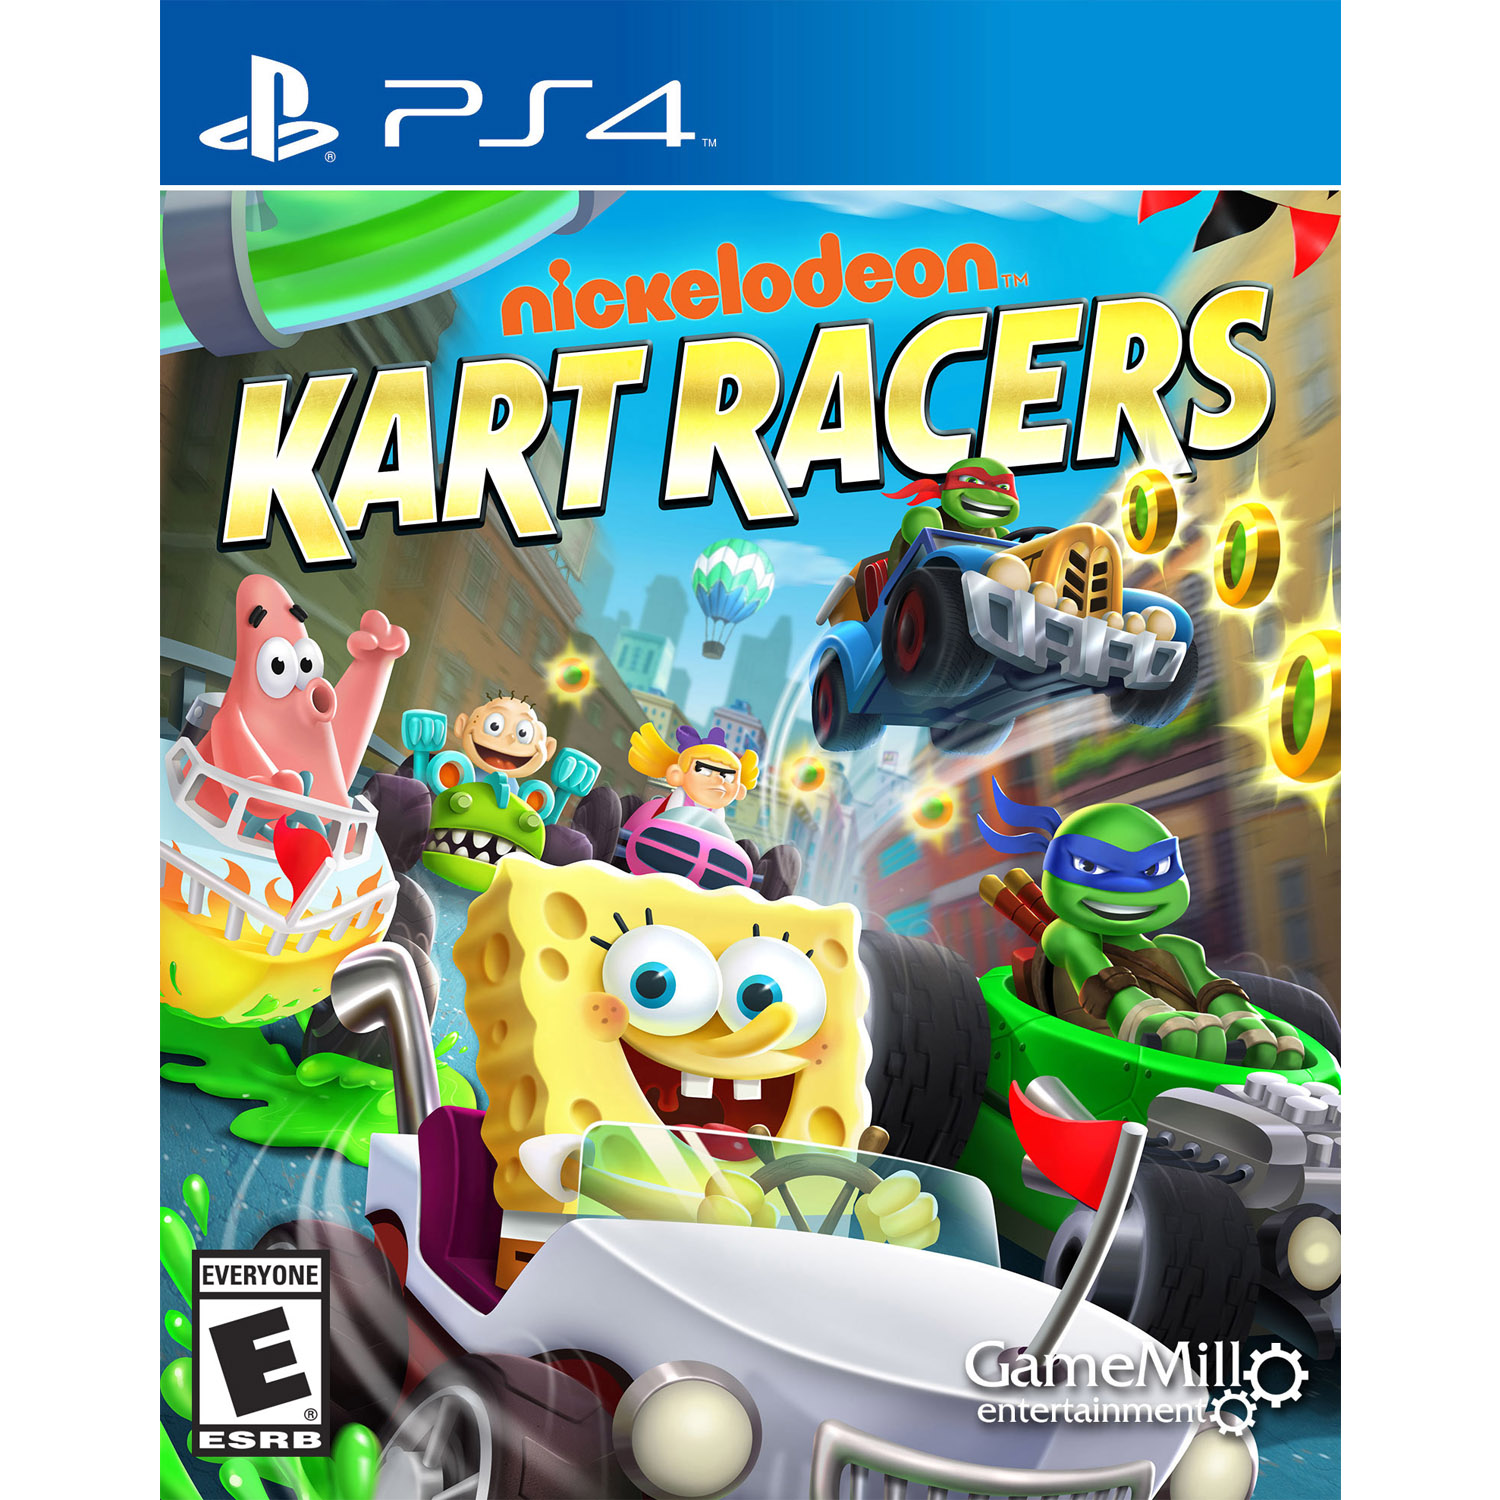 Details about Nickelodeon Kart Racers Gamemill PlayStation 4 for Kids PS4  Racing Video Games